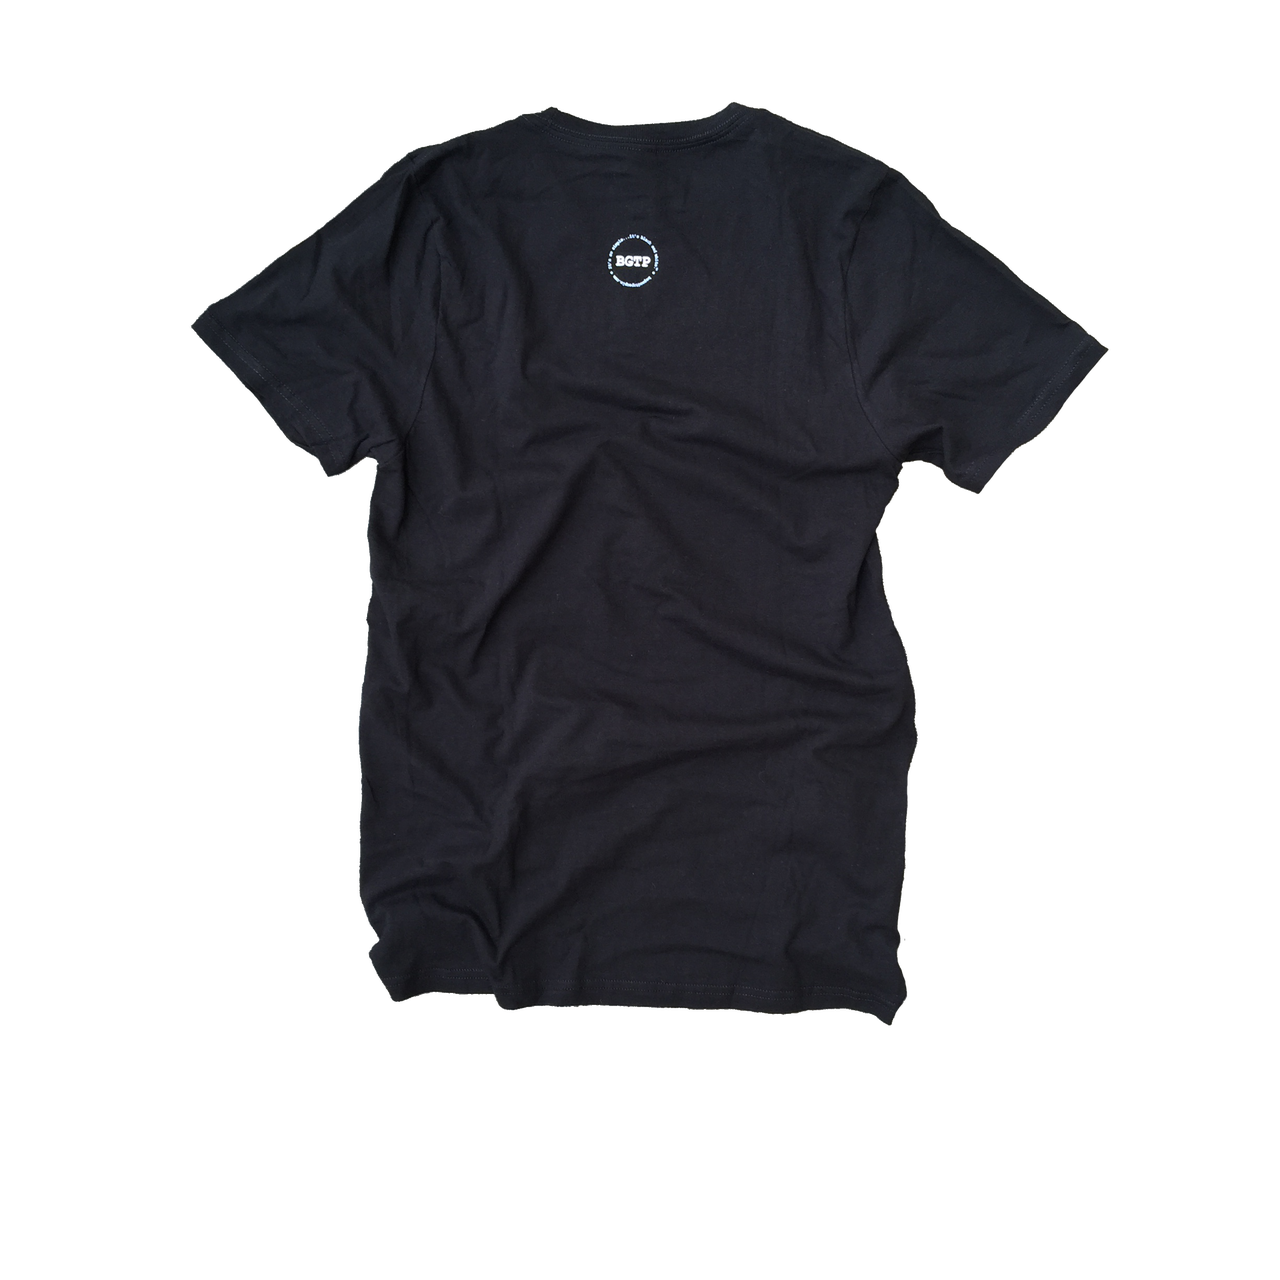 Classic Short Sleeve Tee  (Women+Men)